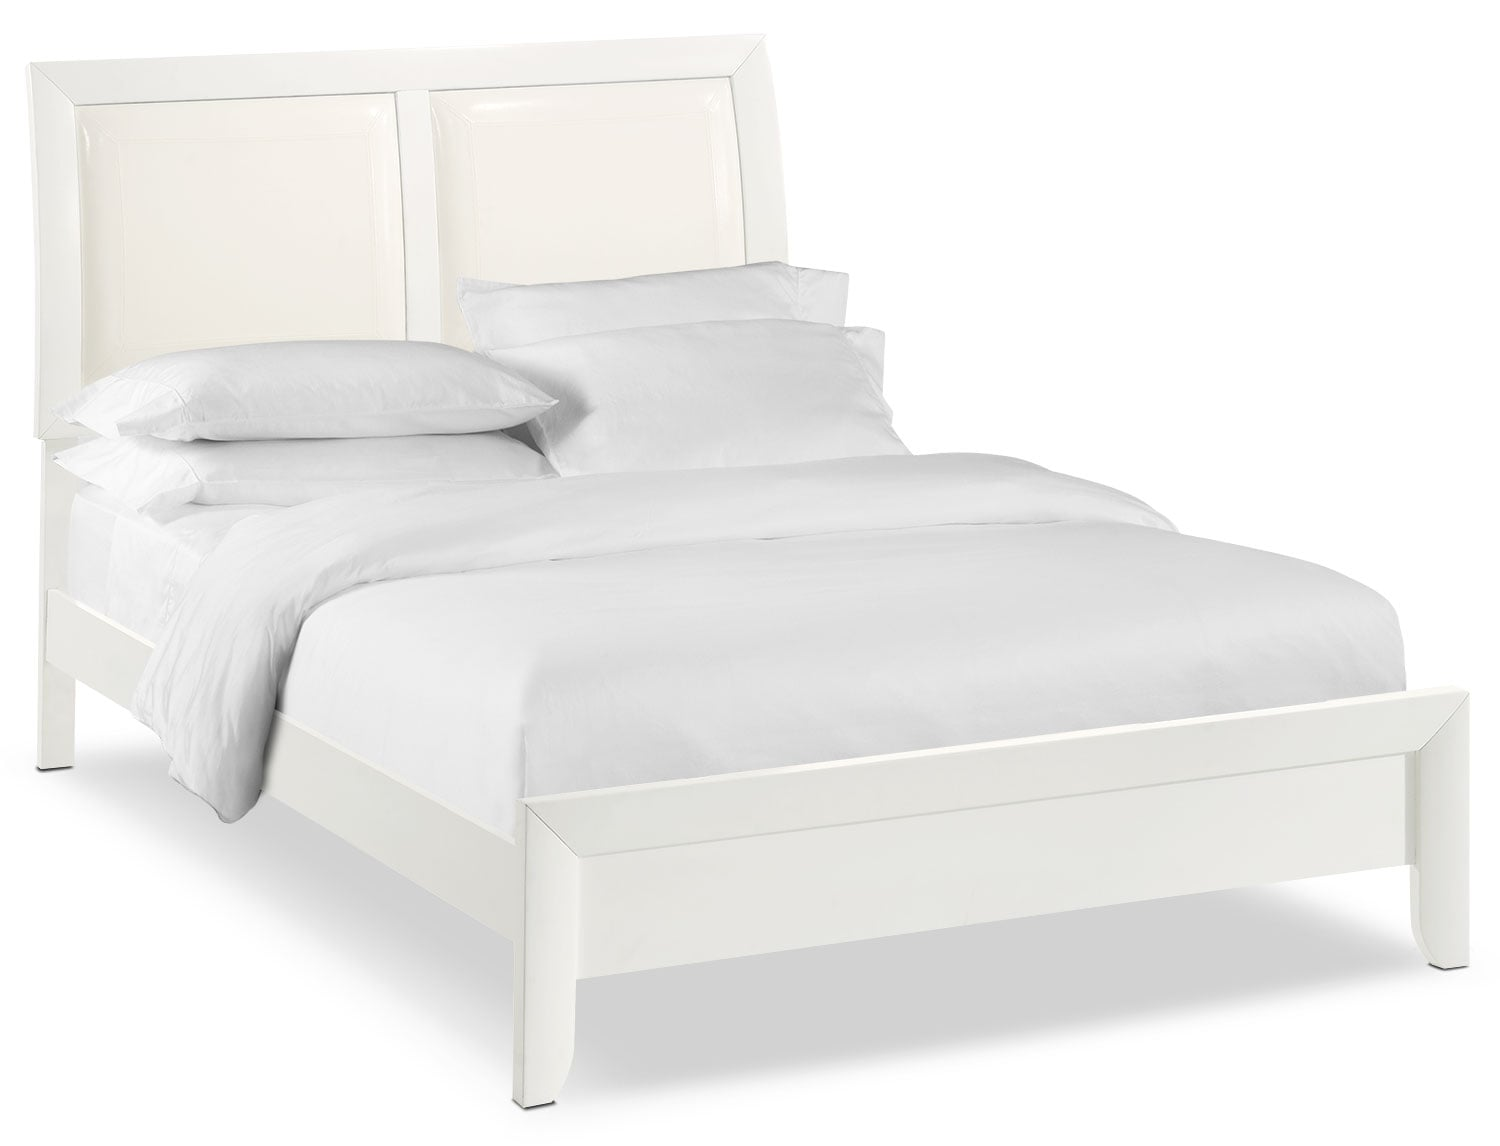 Bedroom Furniture - Braden Full Upholstered Bed - White